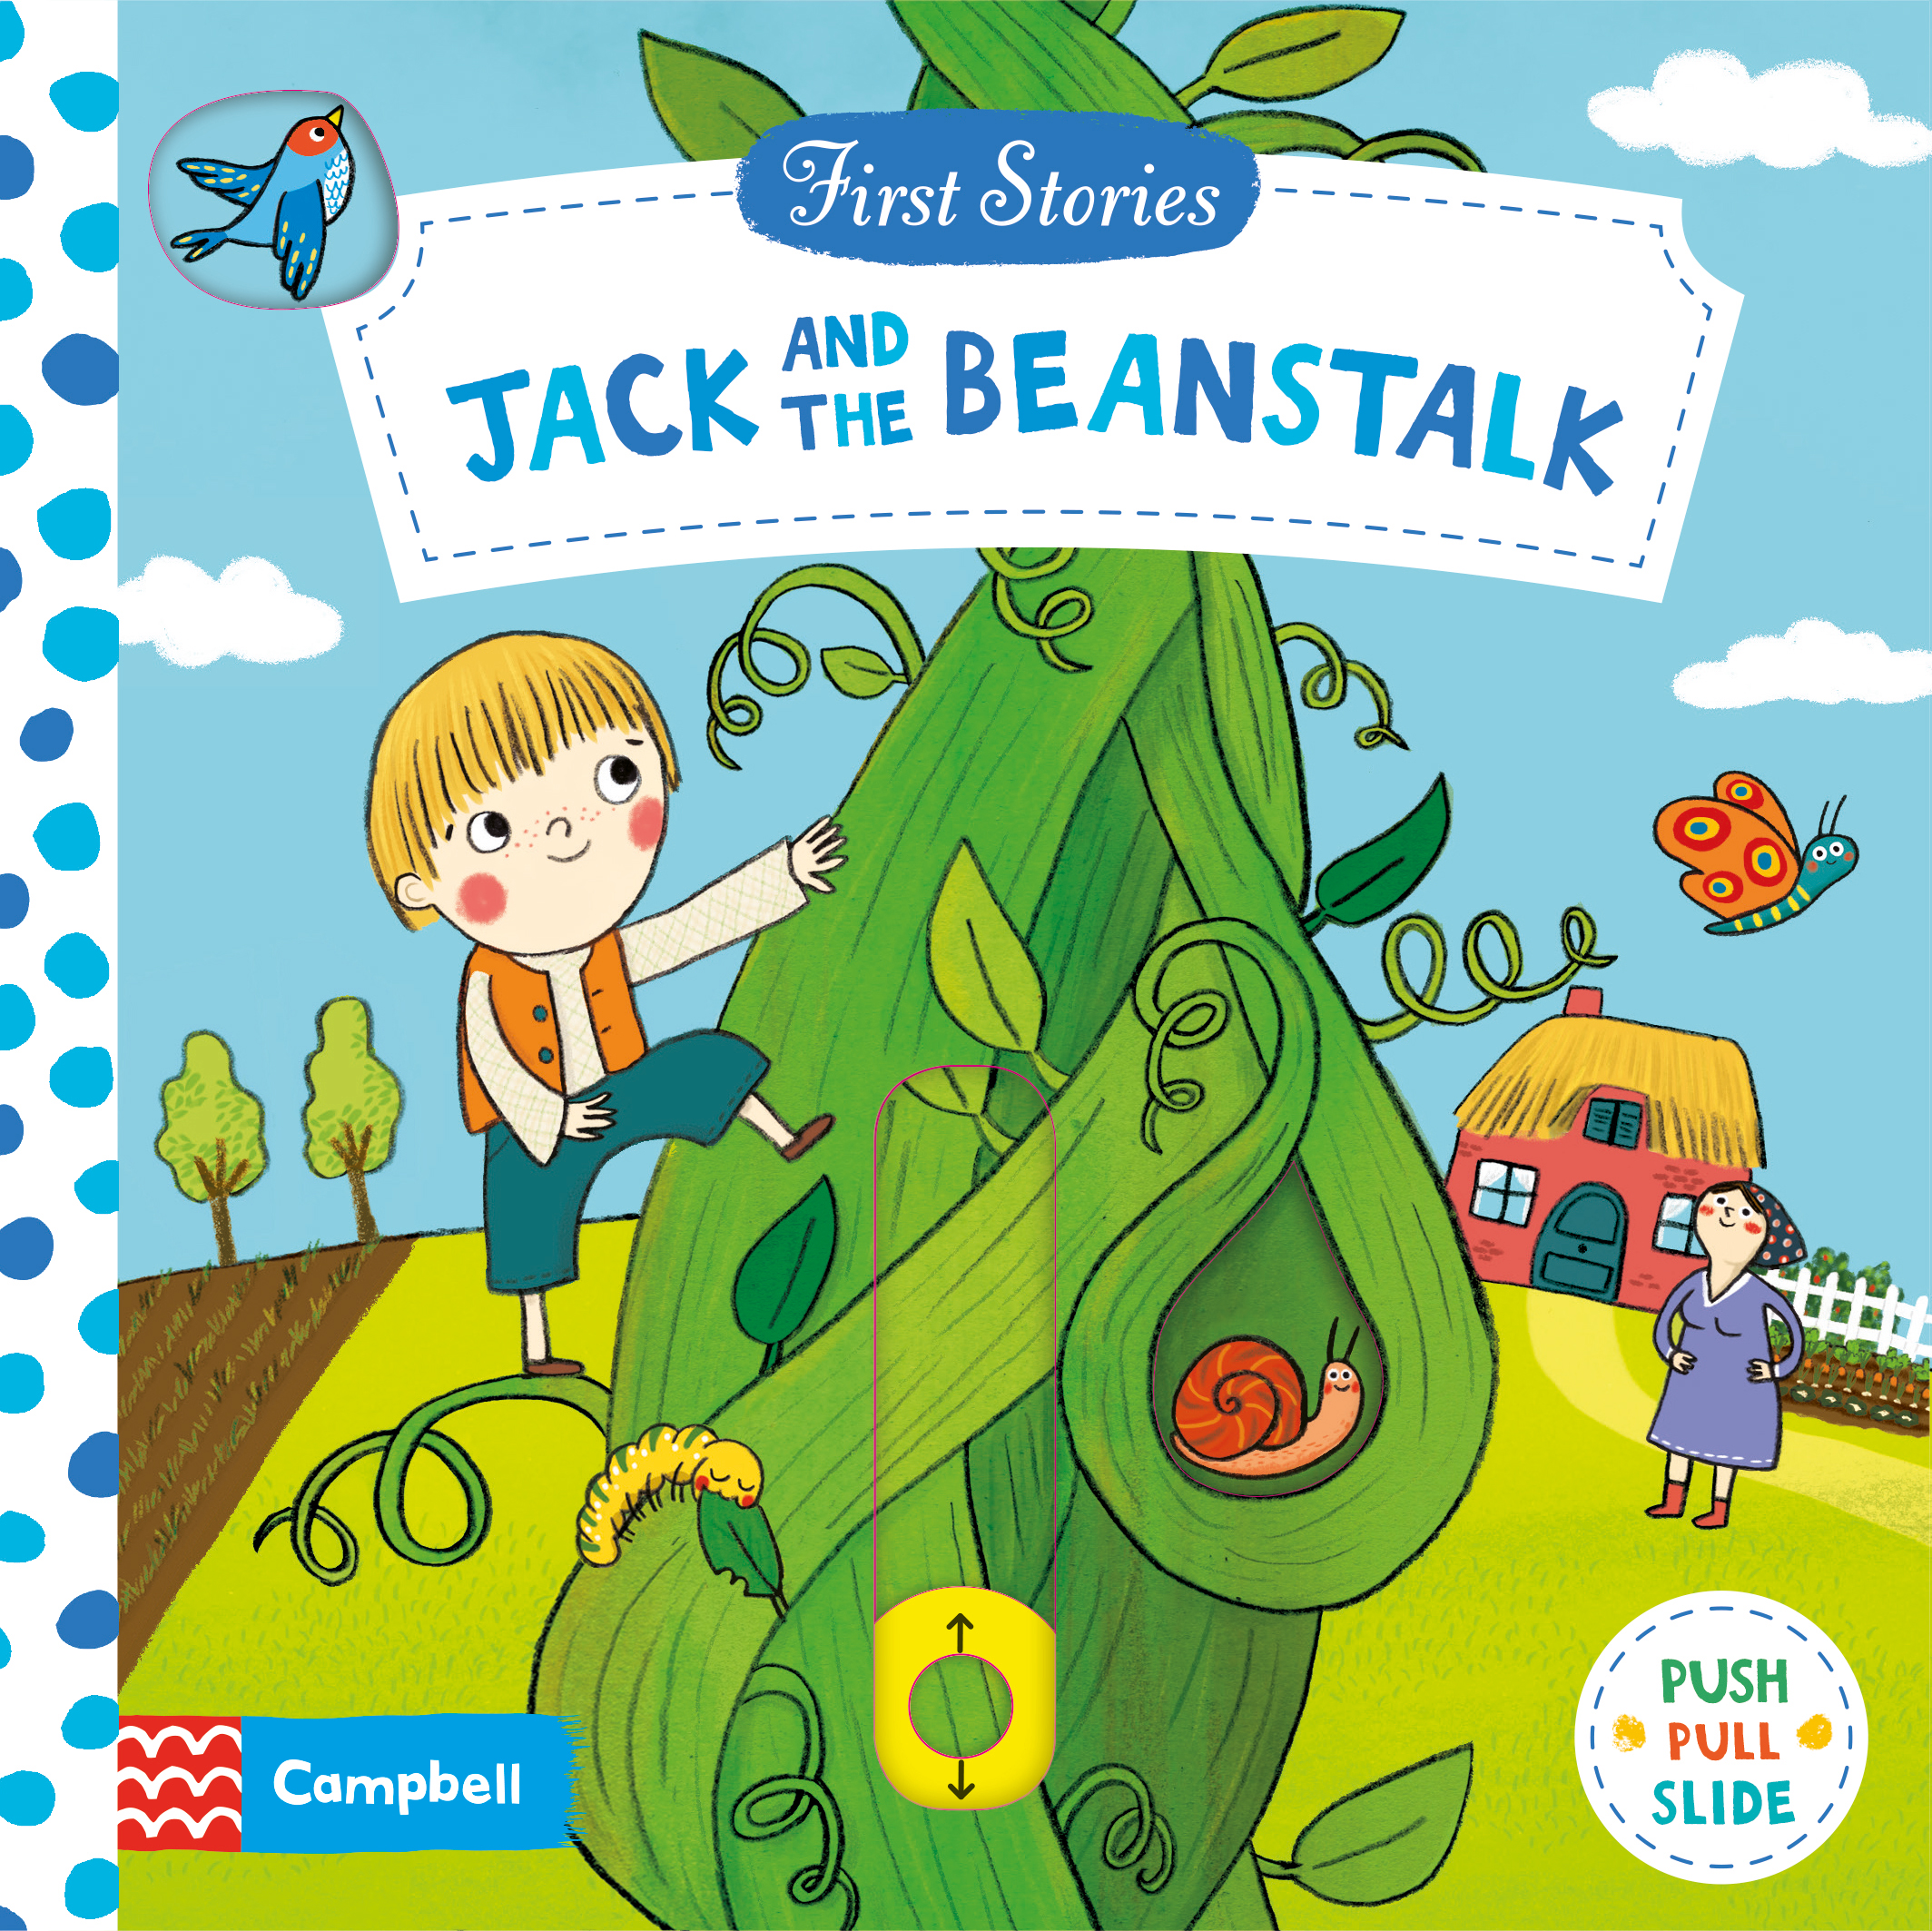 (First Stories) Jack and Beanstalk